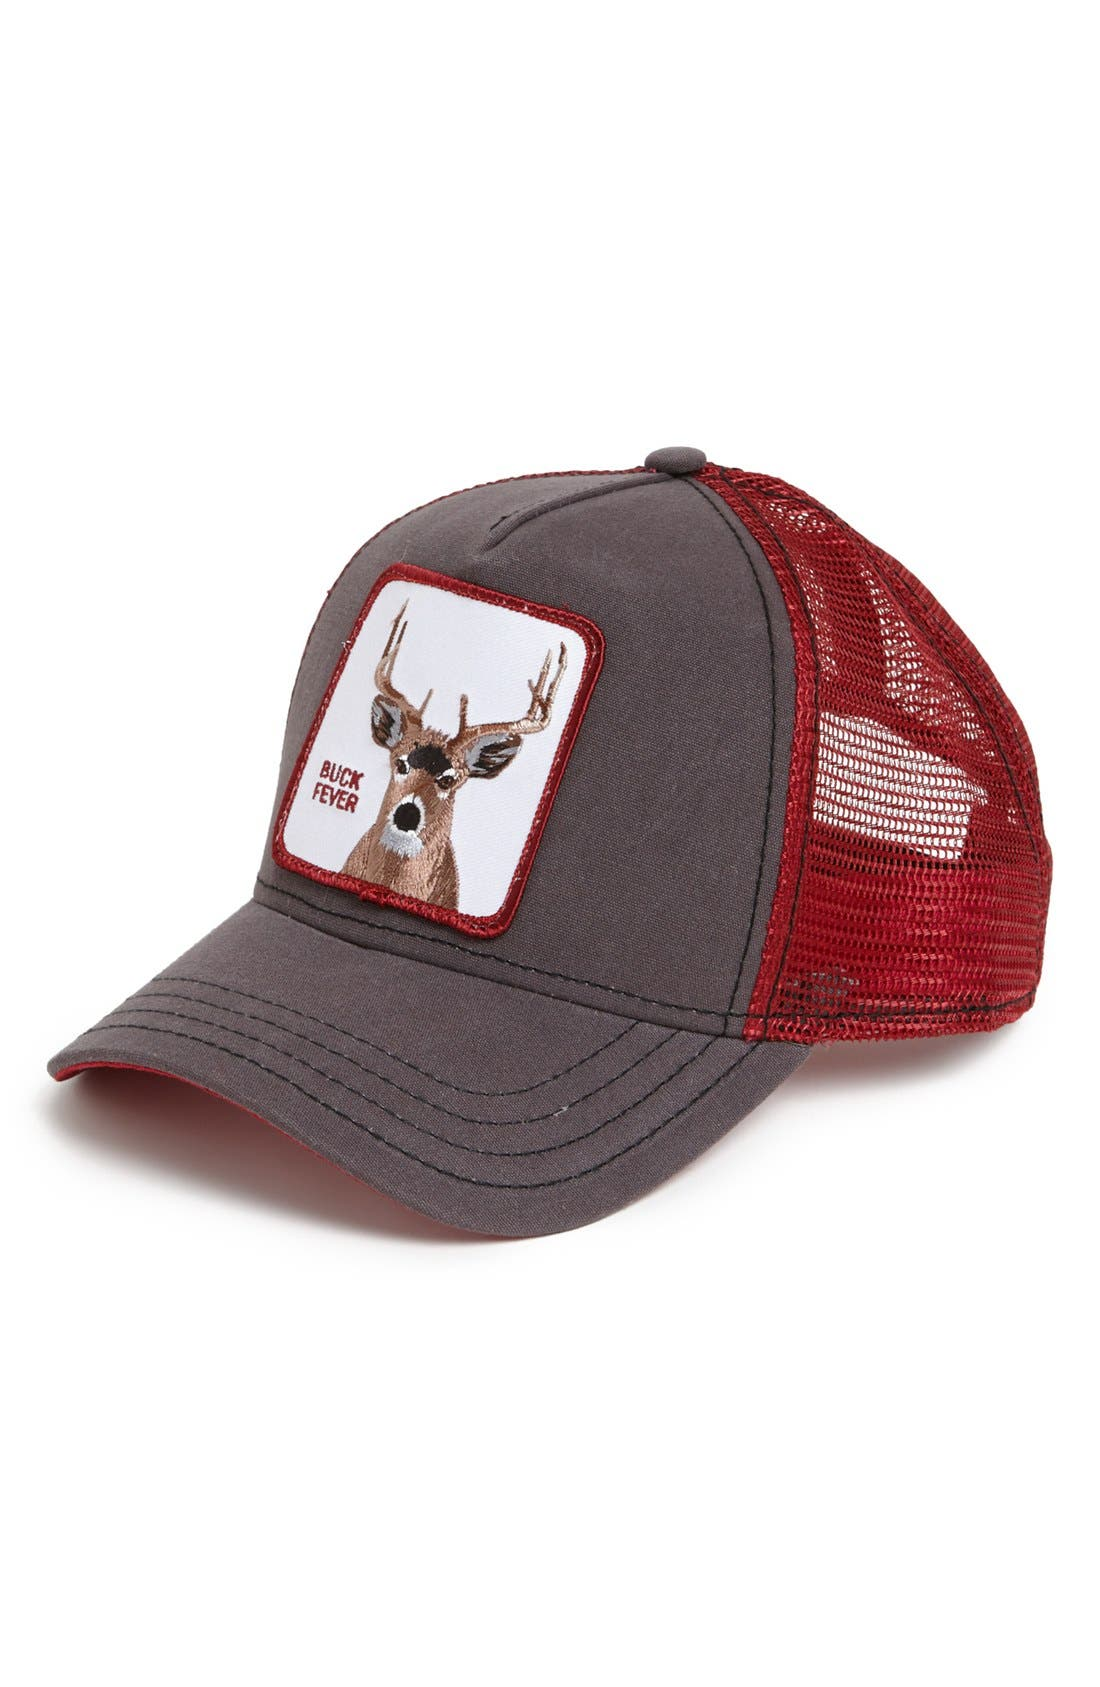 Goorin Brothers 'Animal Farm - Buck Fever' Trucker Cap